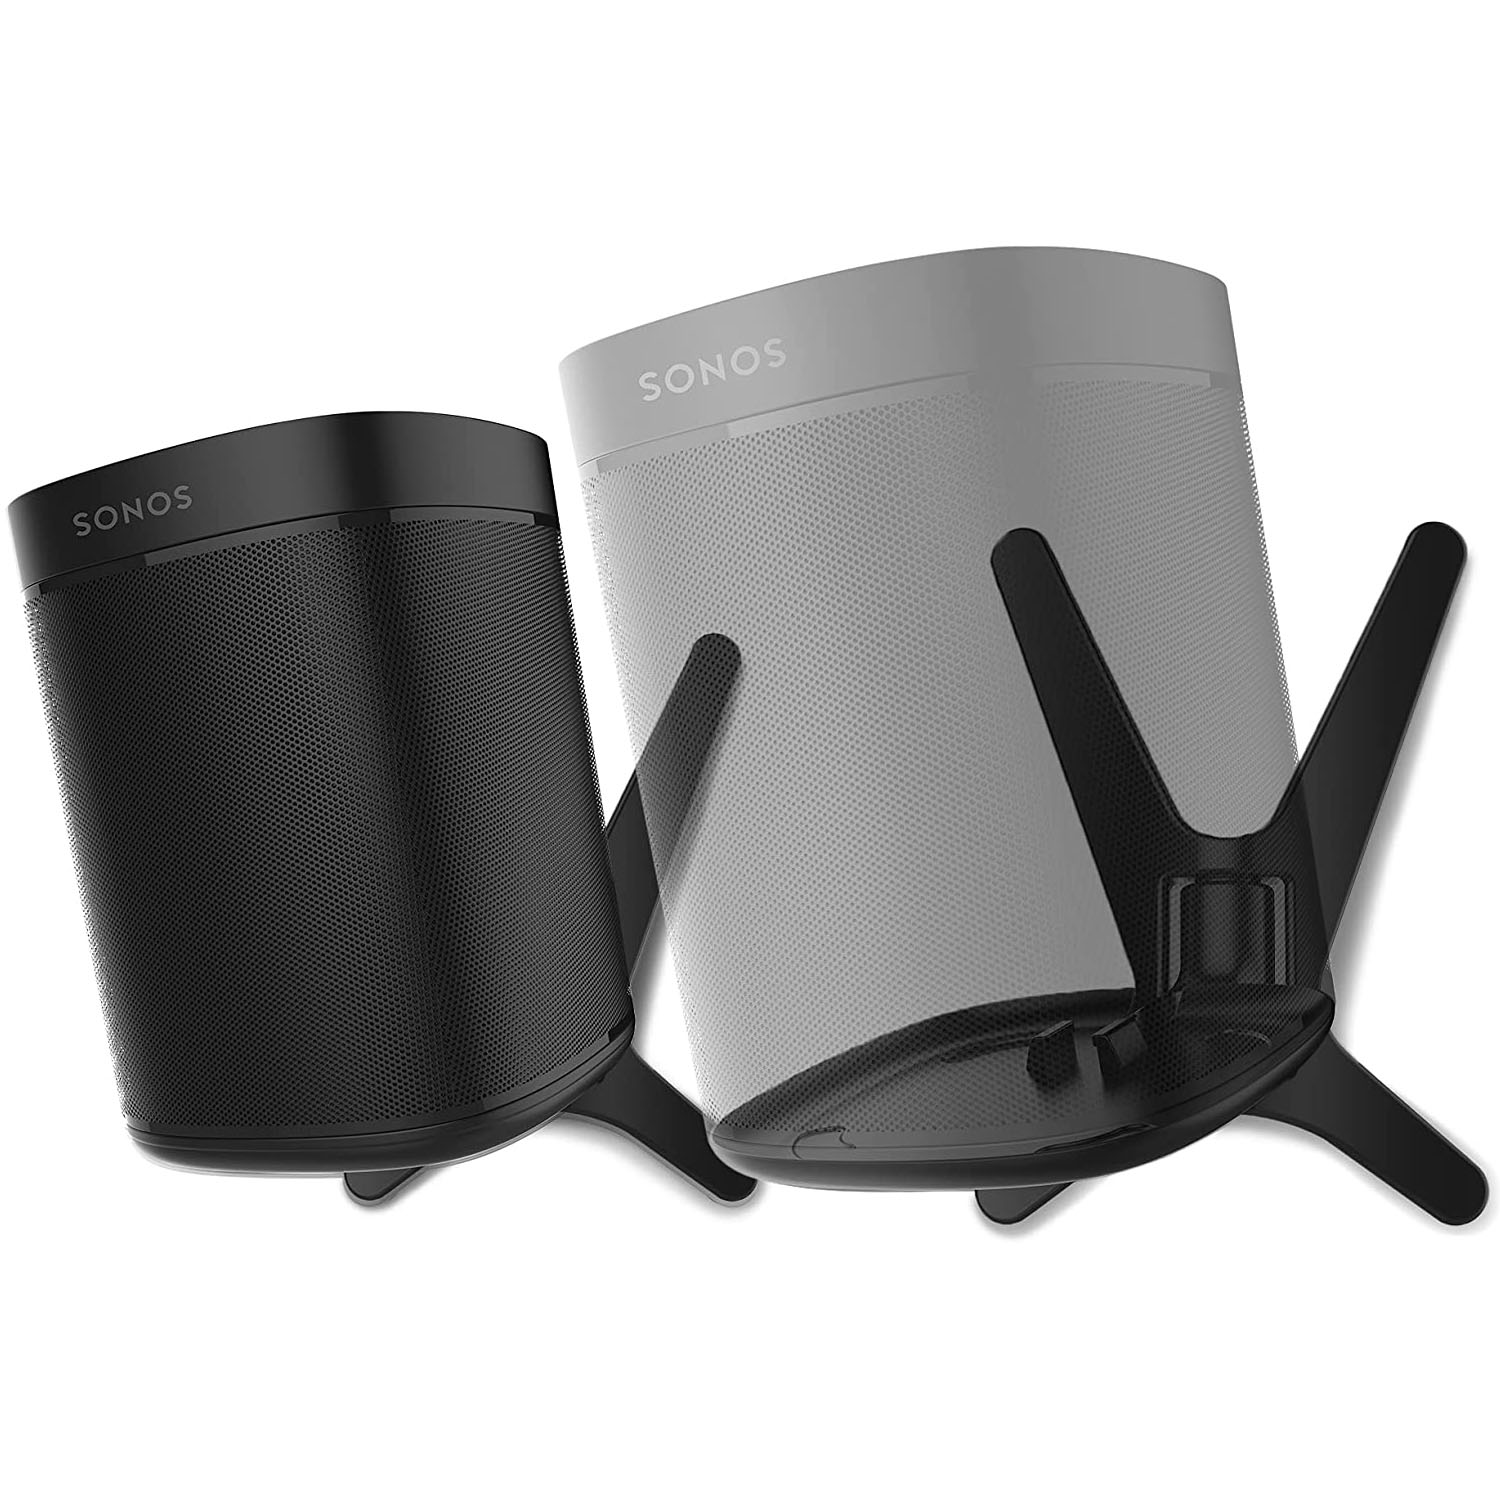 2 x ONE, ONE SL, Play:1 - Premium X Wall Mount Bracket - Black - Compatible with SONOS ONE, ONESL & Play:1